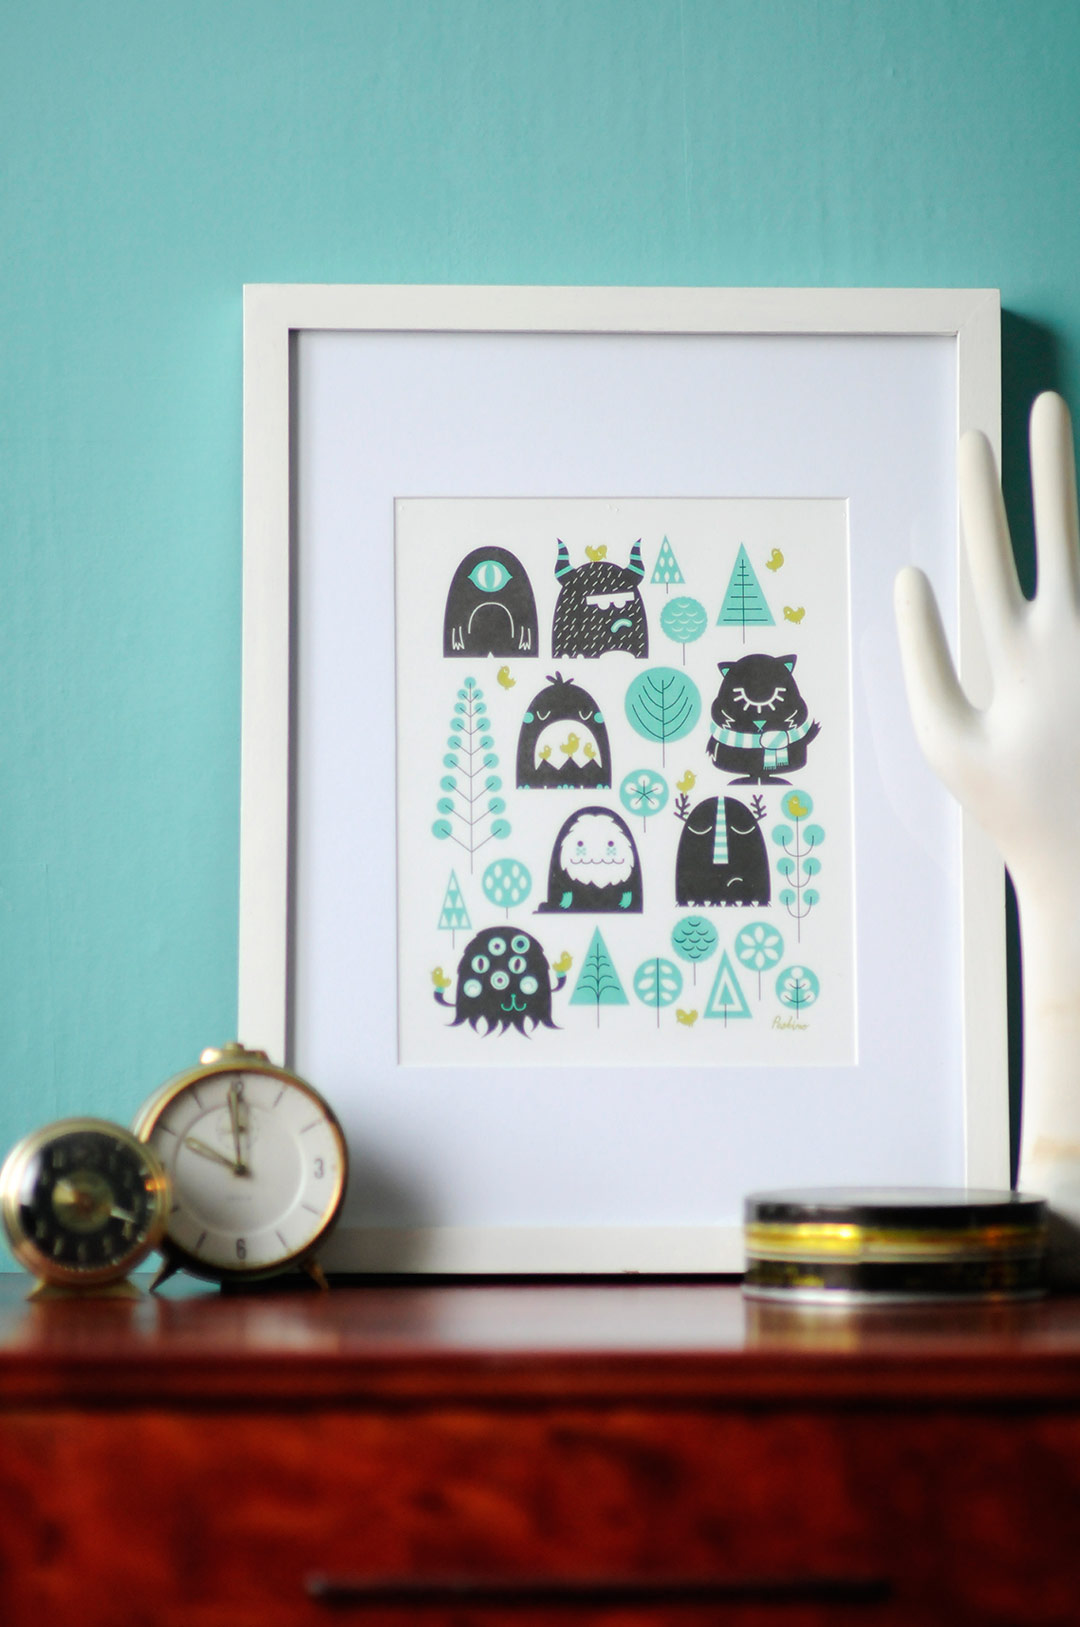 Art print by Peskimo